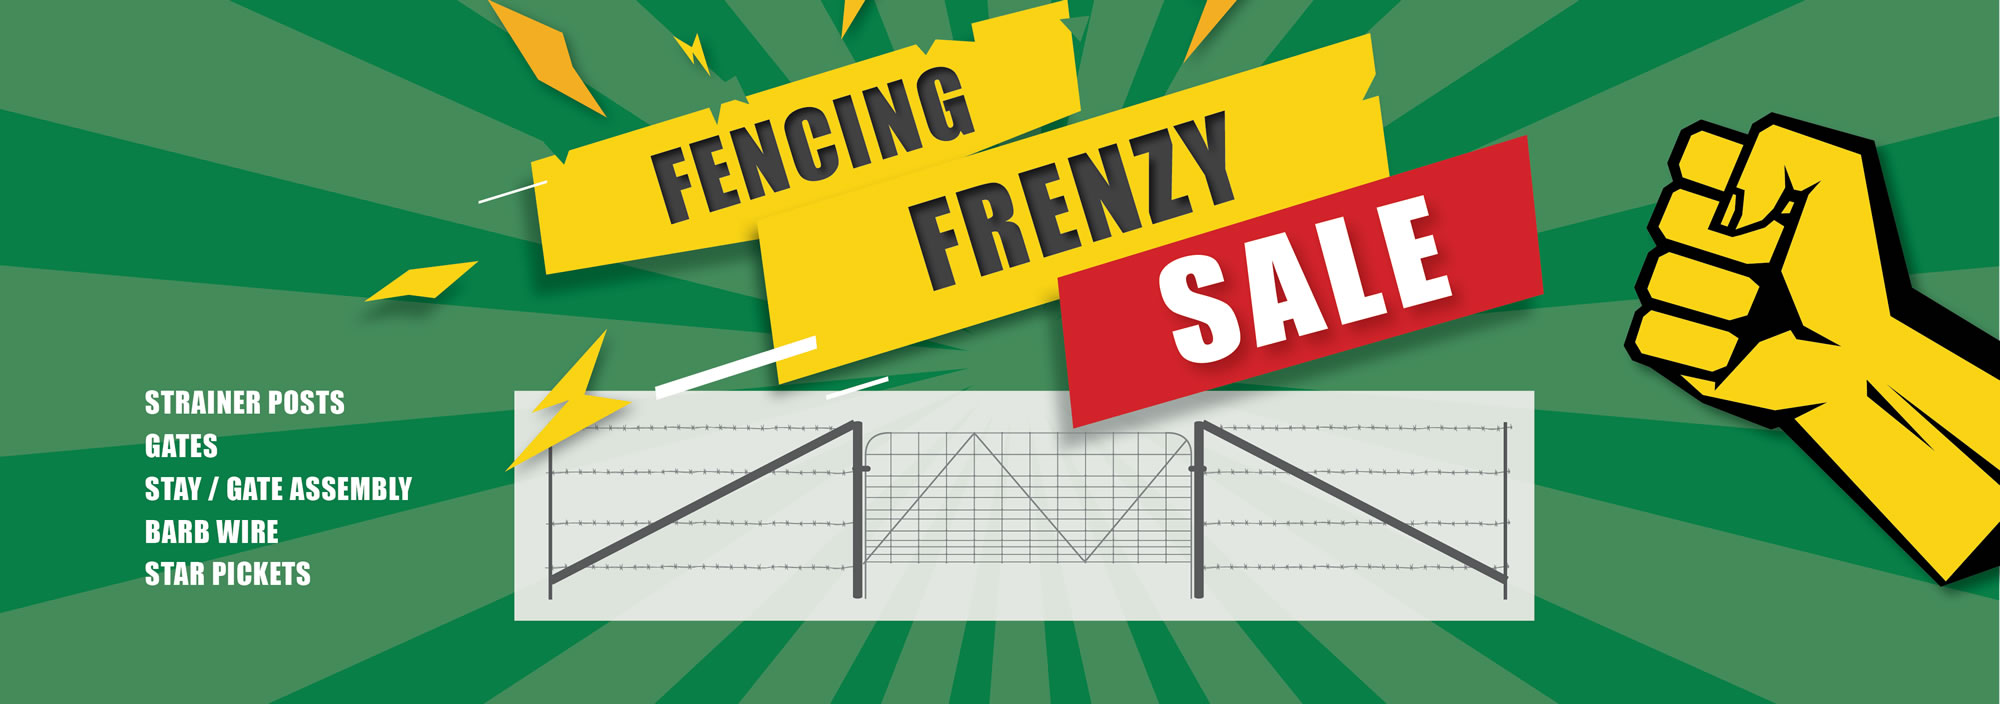 fencing frenzy sale banner without stamp